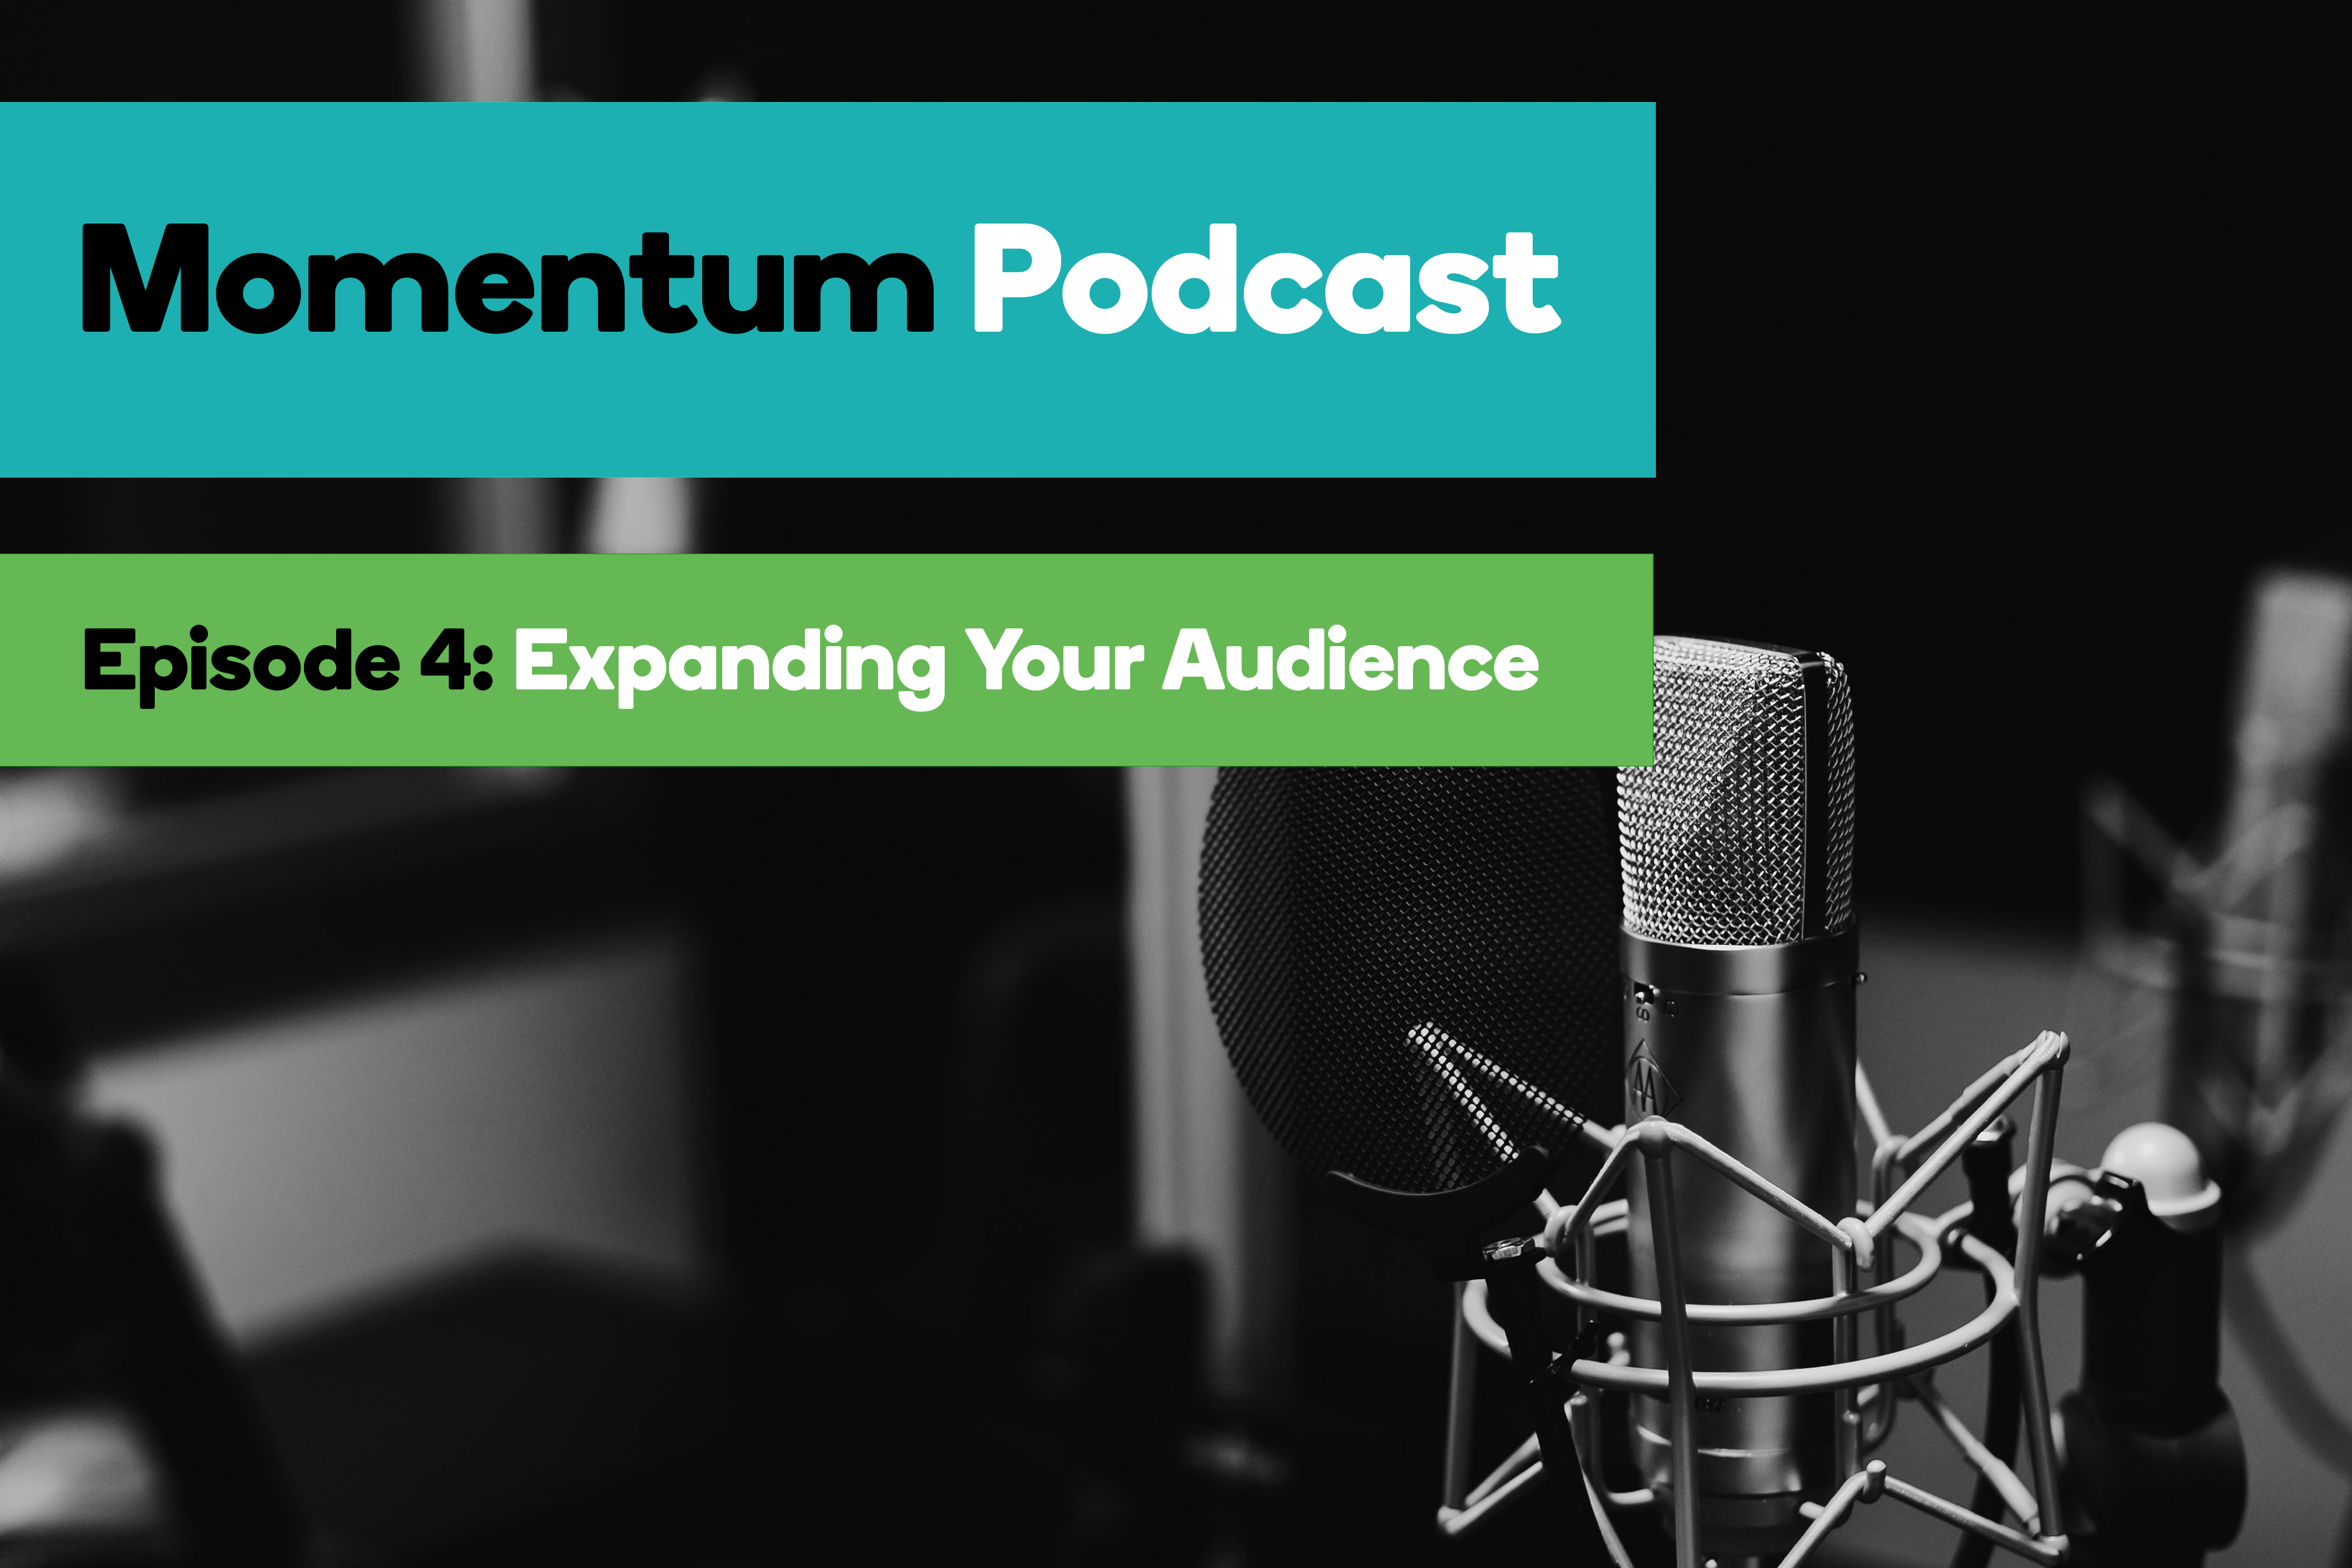 Flywheel momentum podcast